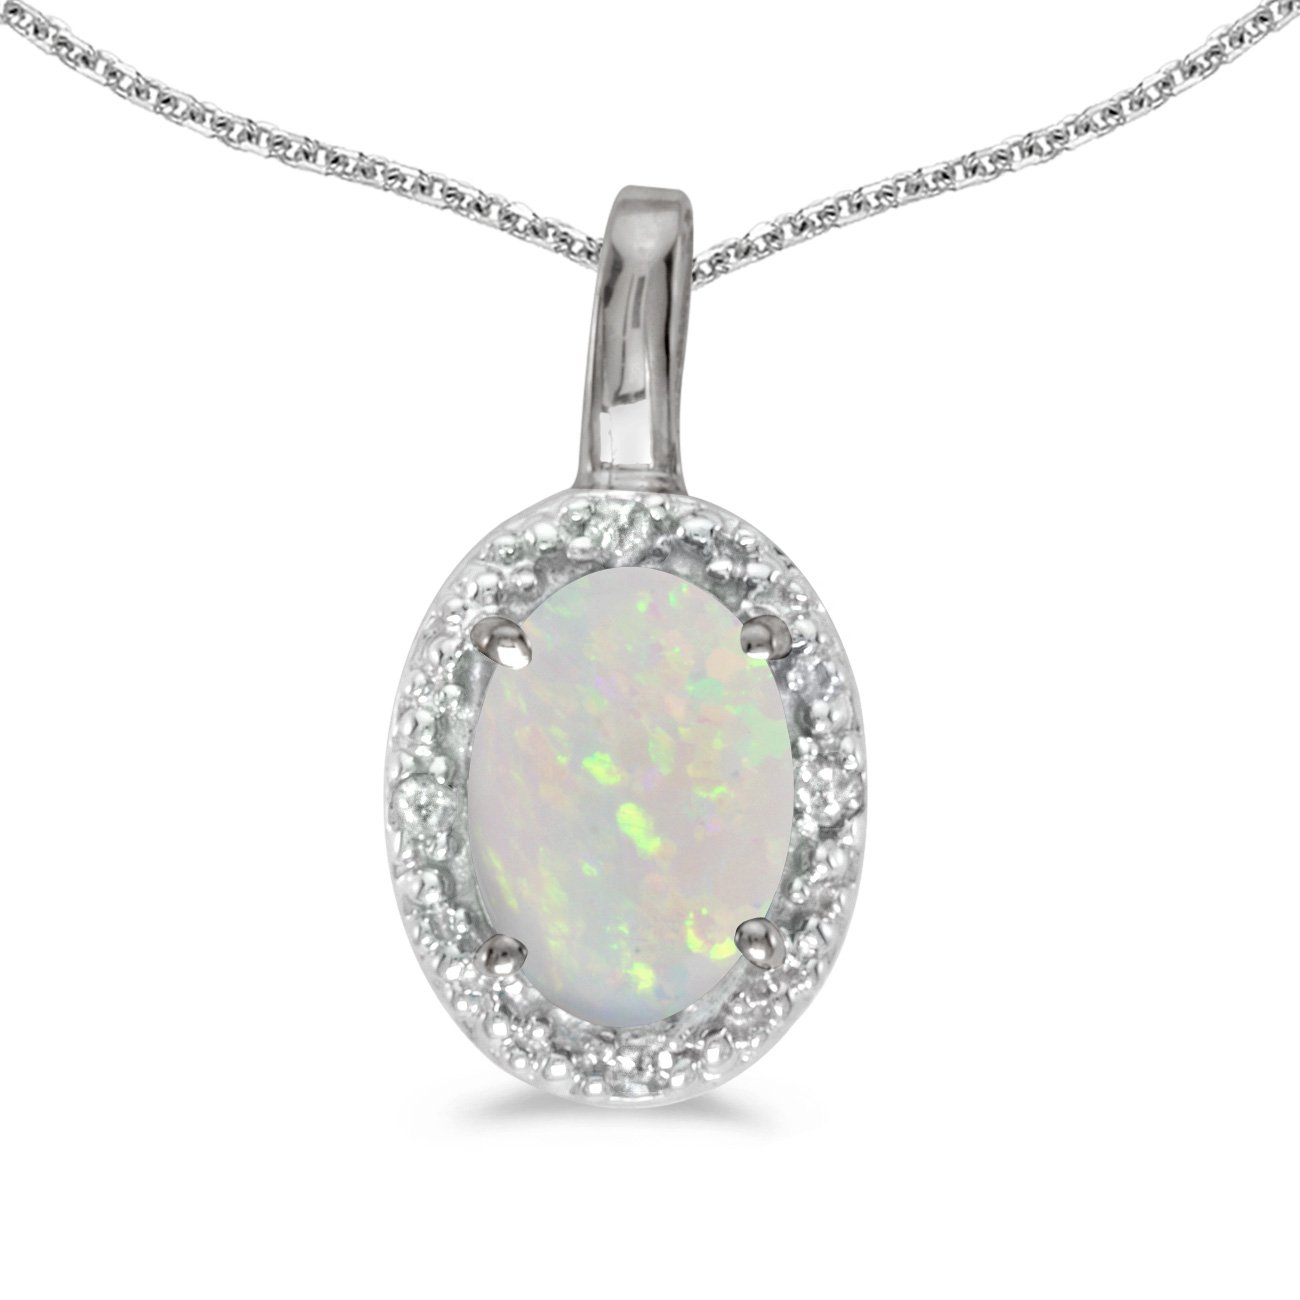 Jewels By Lux 10k White Gold Genuine Birthstone Oval Opal And Diamond Pendant (1/5 Cttw.)